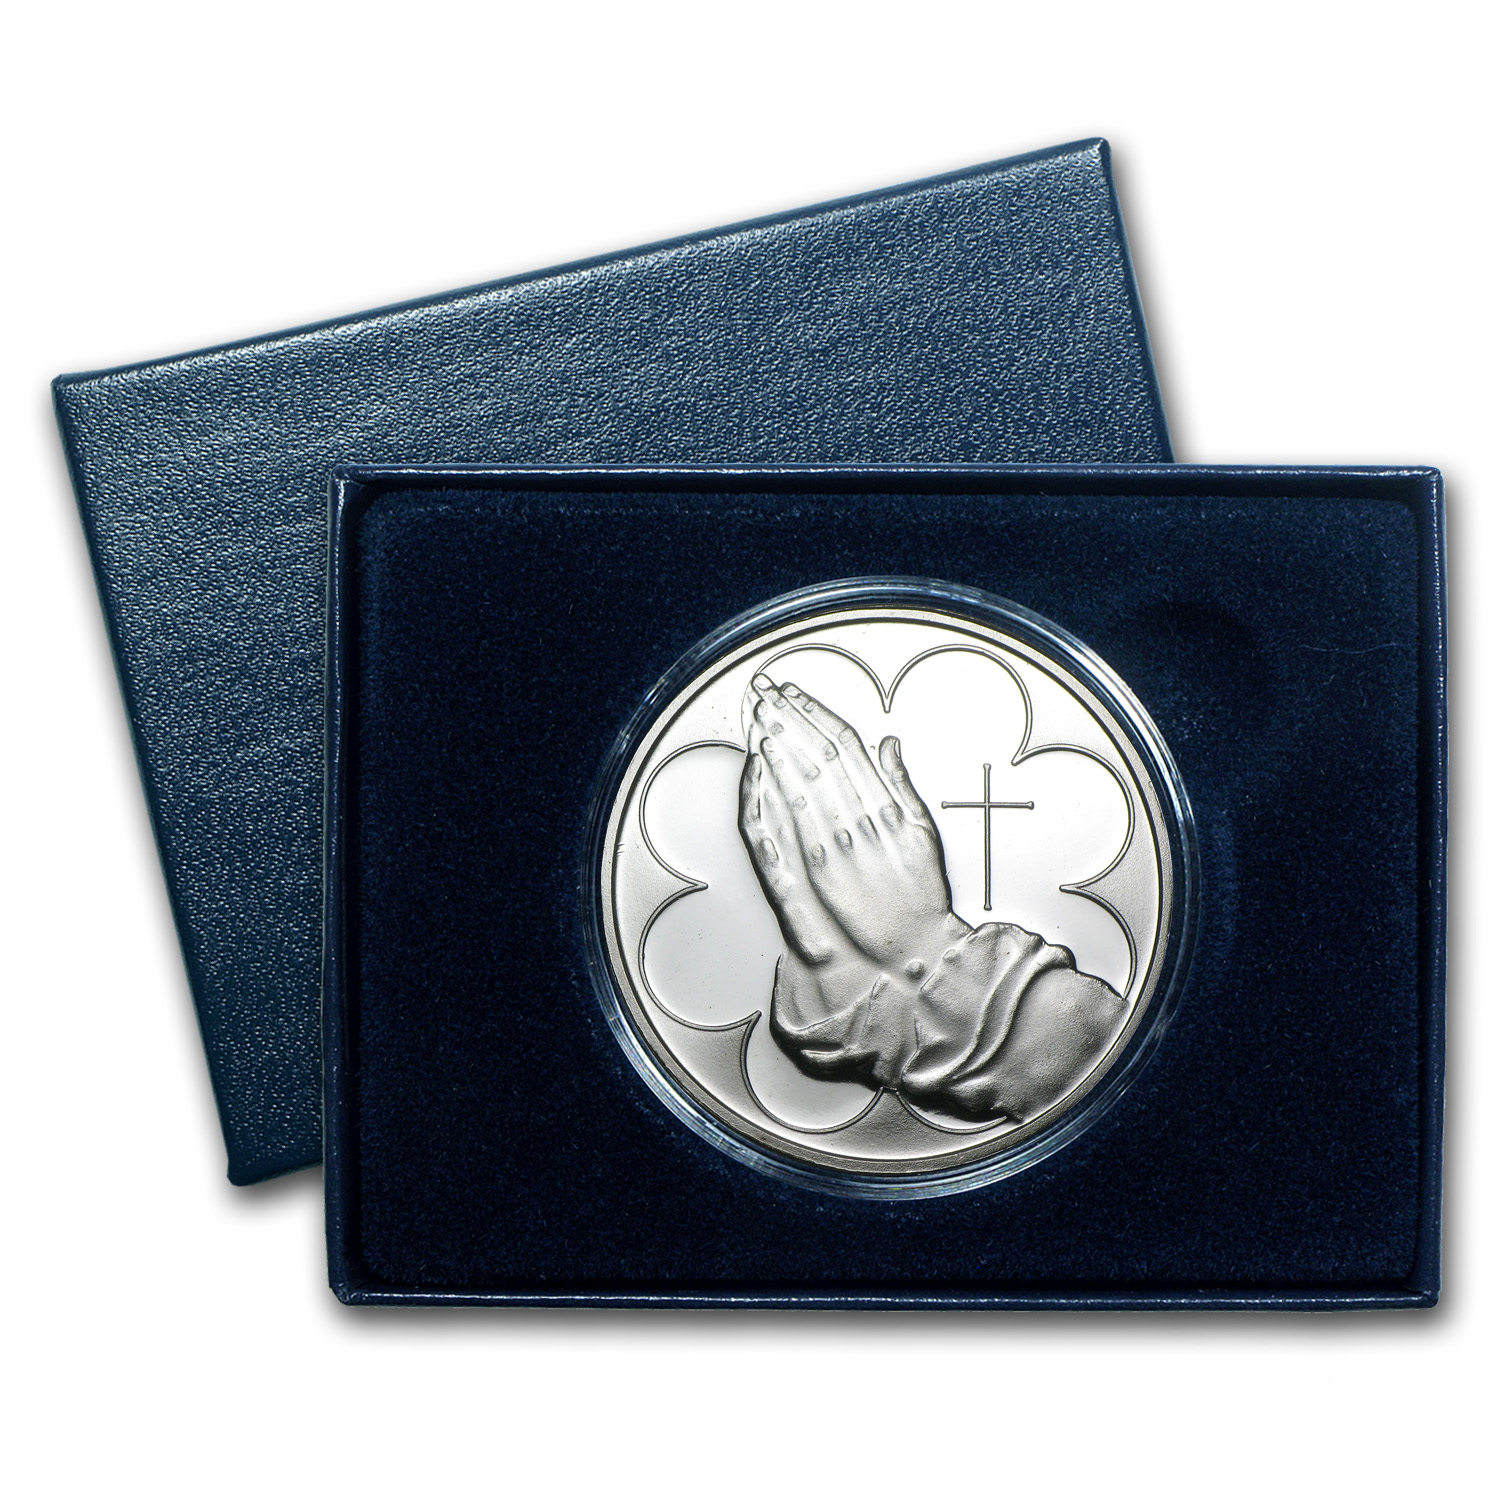 1 oz Silver Round - Praying Hands (w/Box & Capsule)